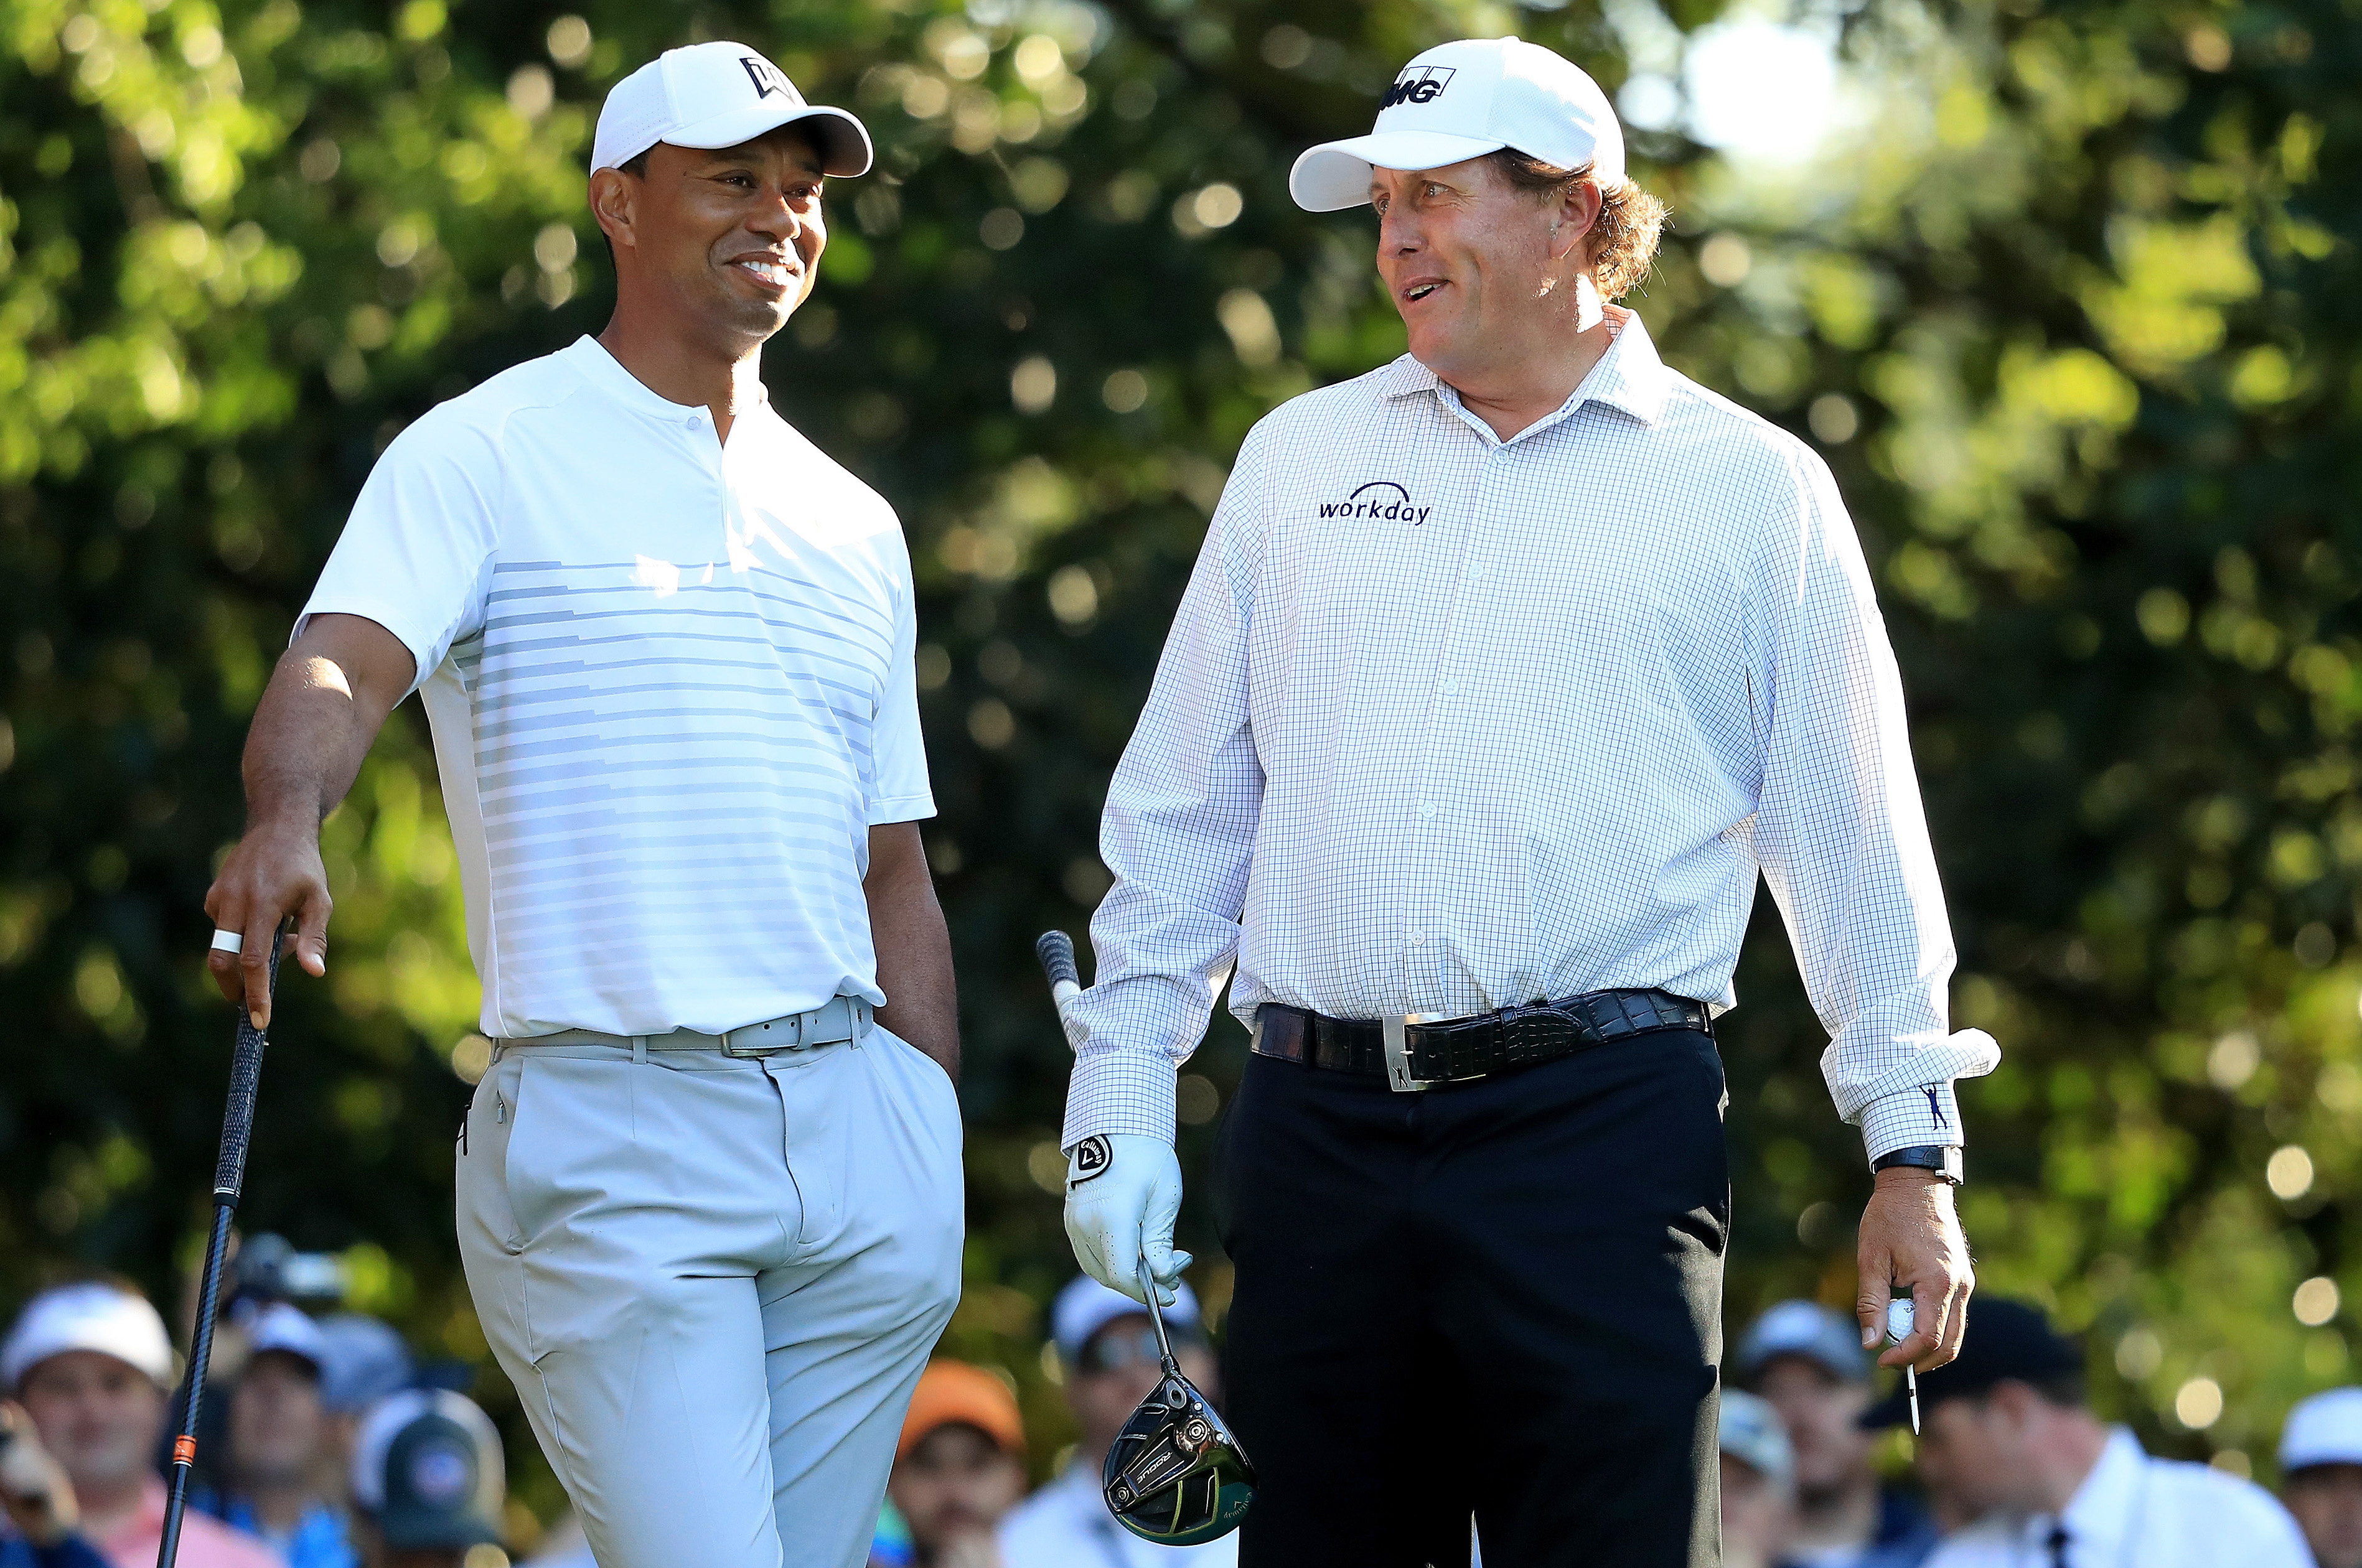 AUGUSTA, GA - APRIL 03: Tiger Woods and Phil Mickelson of the United States talk on the 11th hole during a practice round prior to the start of the 2018 Masters Tournament at Augusta National Golf Club on April 3, 2018 in Augusta, Georgia. (Photo by Andrew Redington/Getty Images)